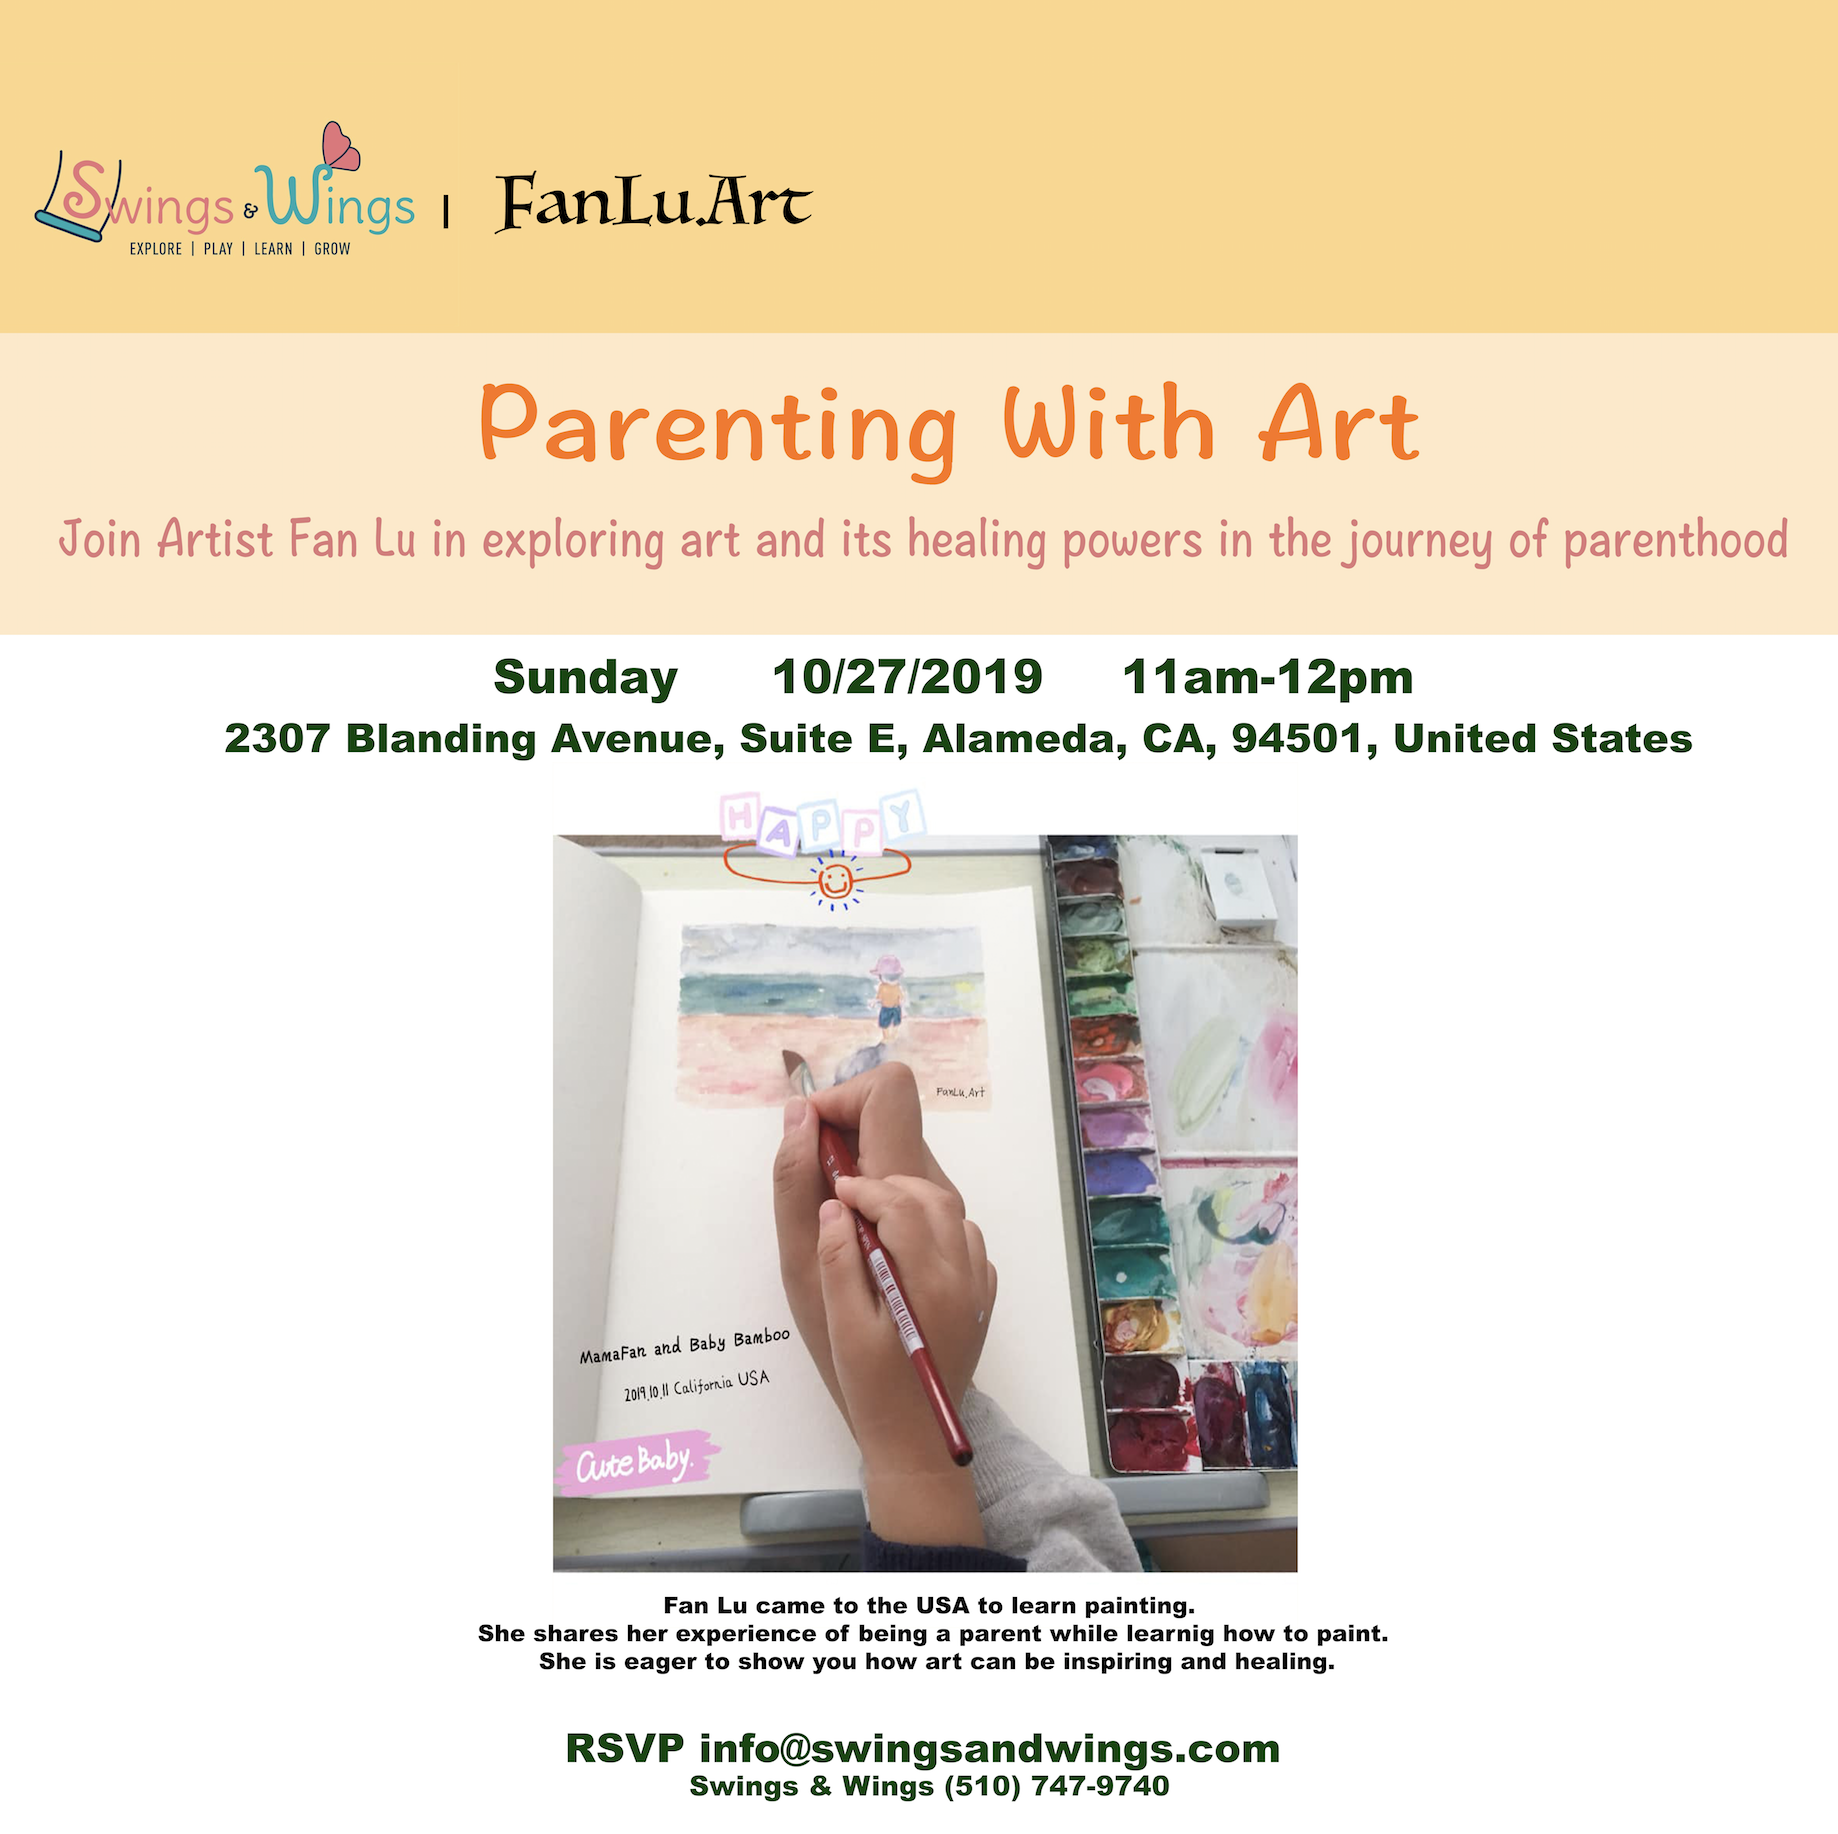 RSVP to info@swingsandwings.com - Join me in exploring art and its healing powers in the journey of parenthood. Art supplies will be provided.The event is free with paid daily entry.